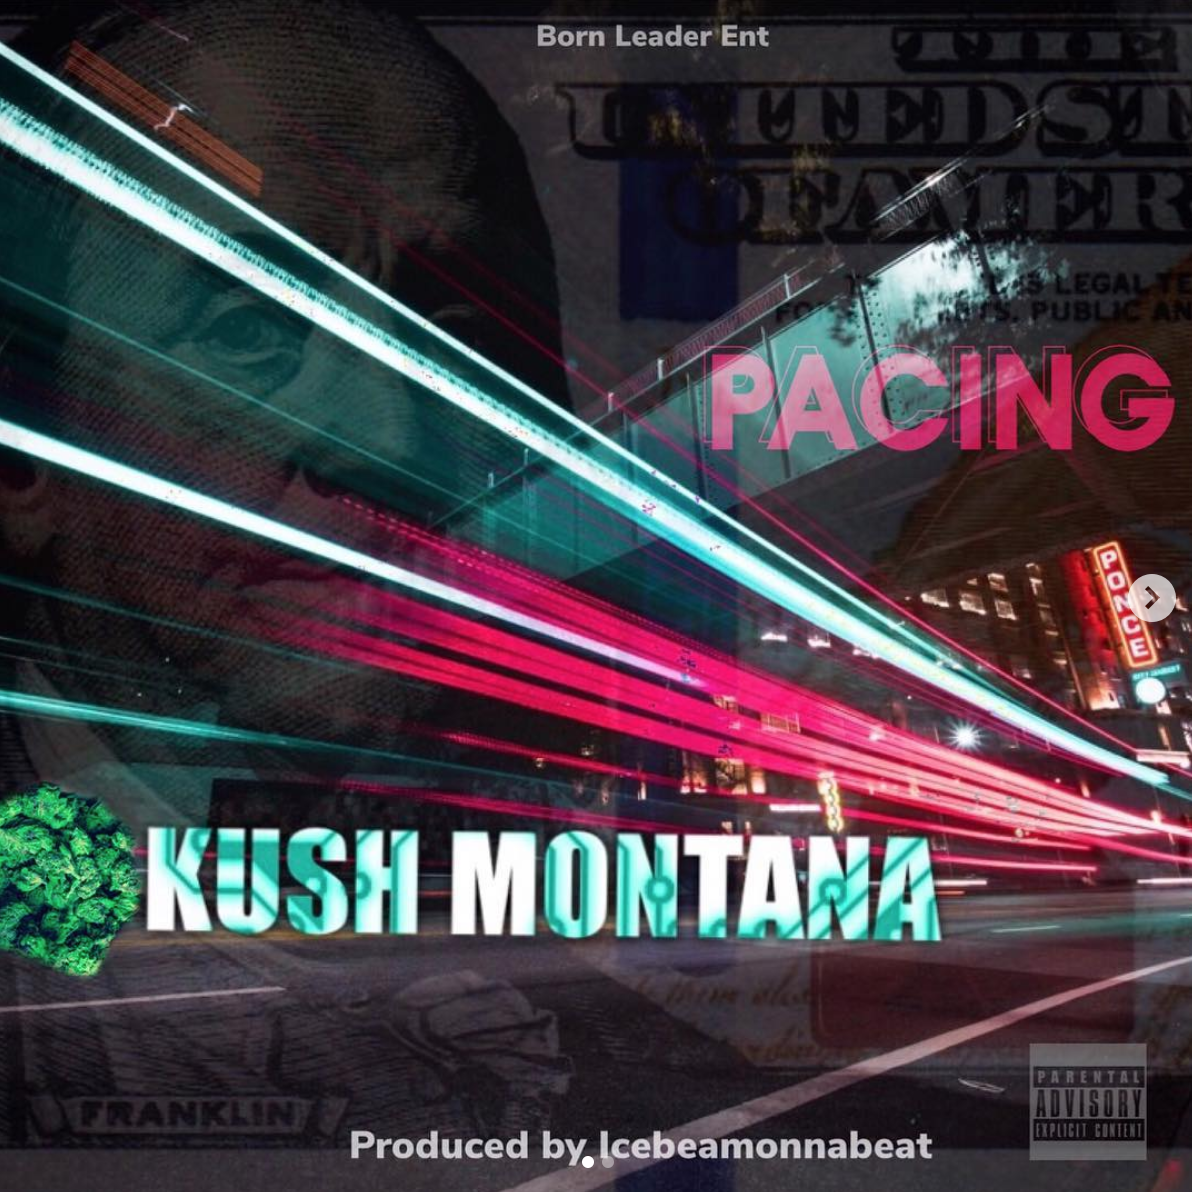 Kush Montana is the Name!